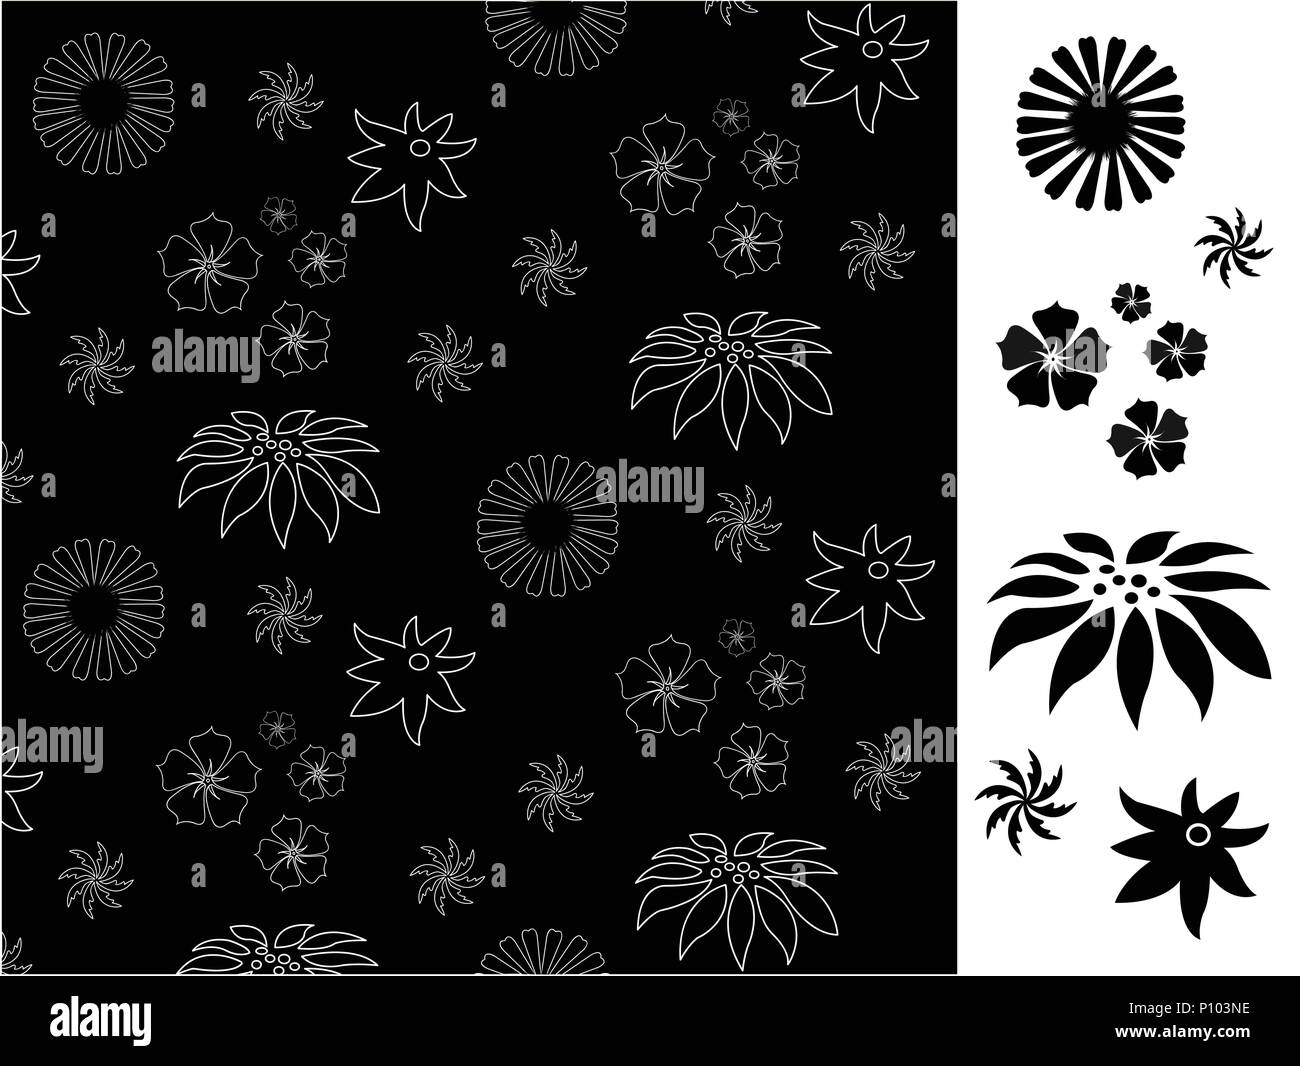 Seamless With Black Flowers Pattern Wallpaper Stock Vector